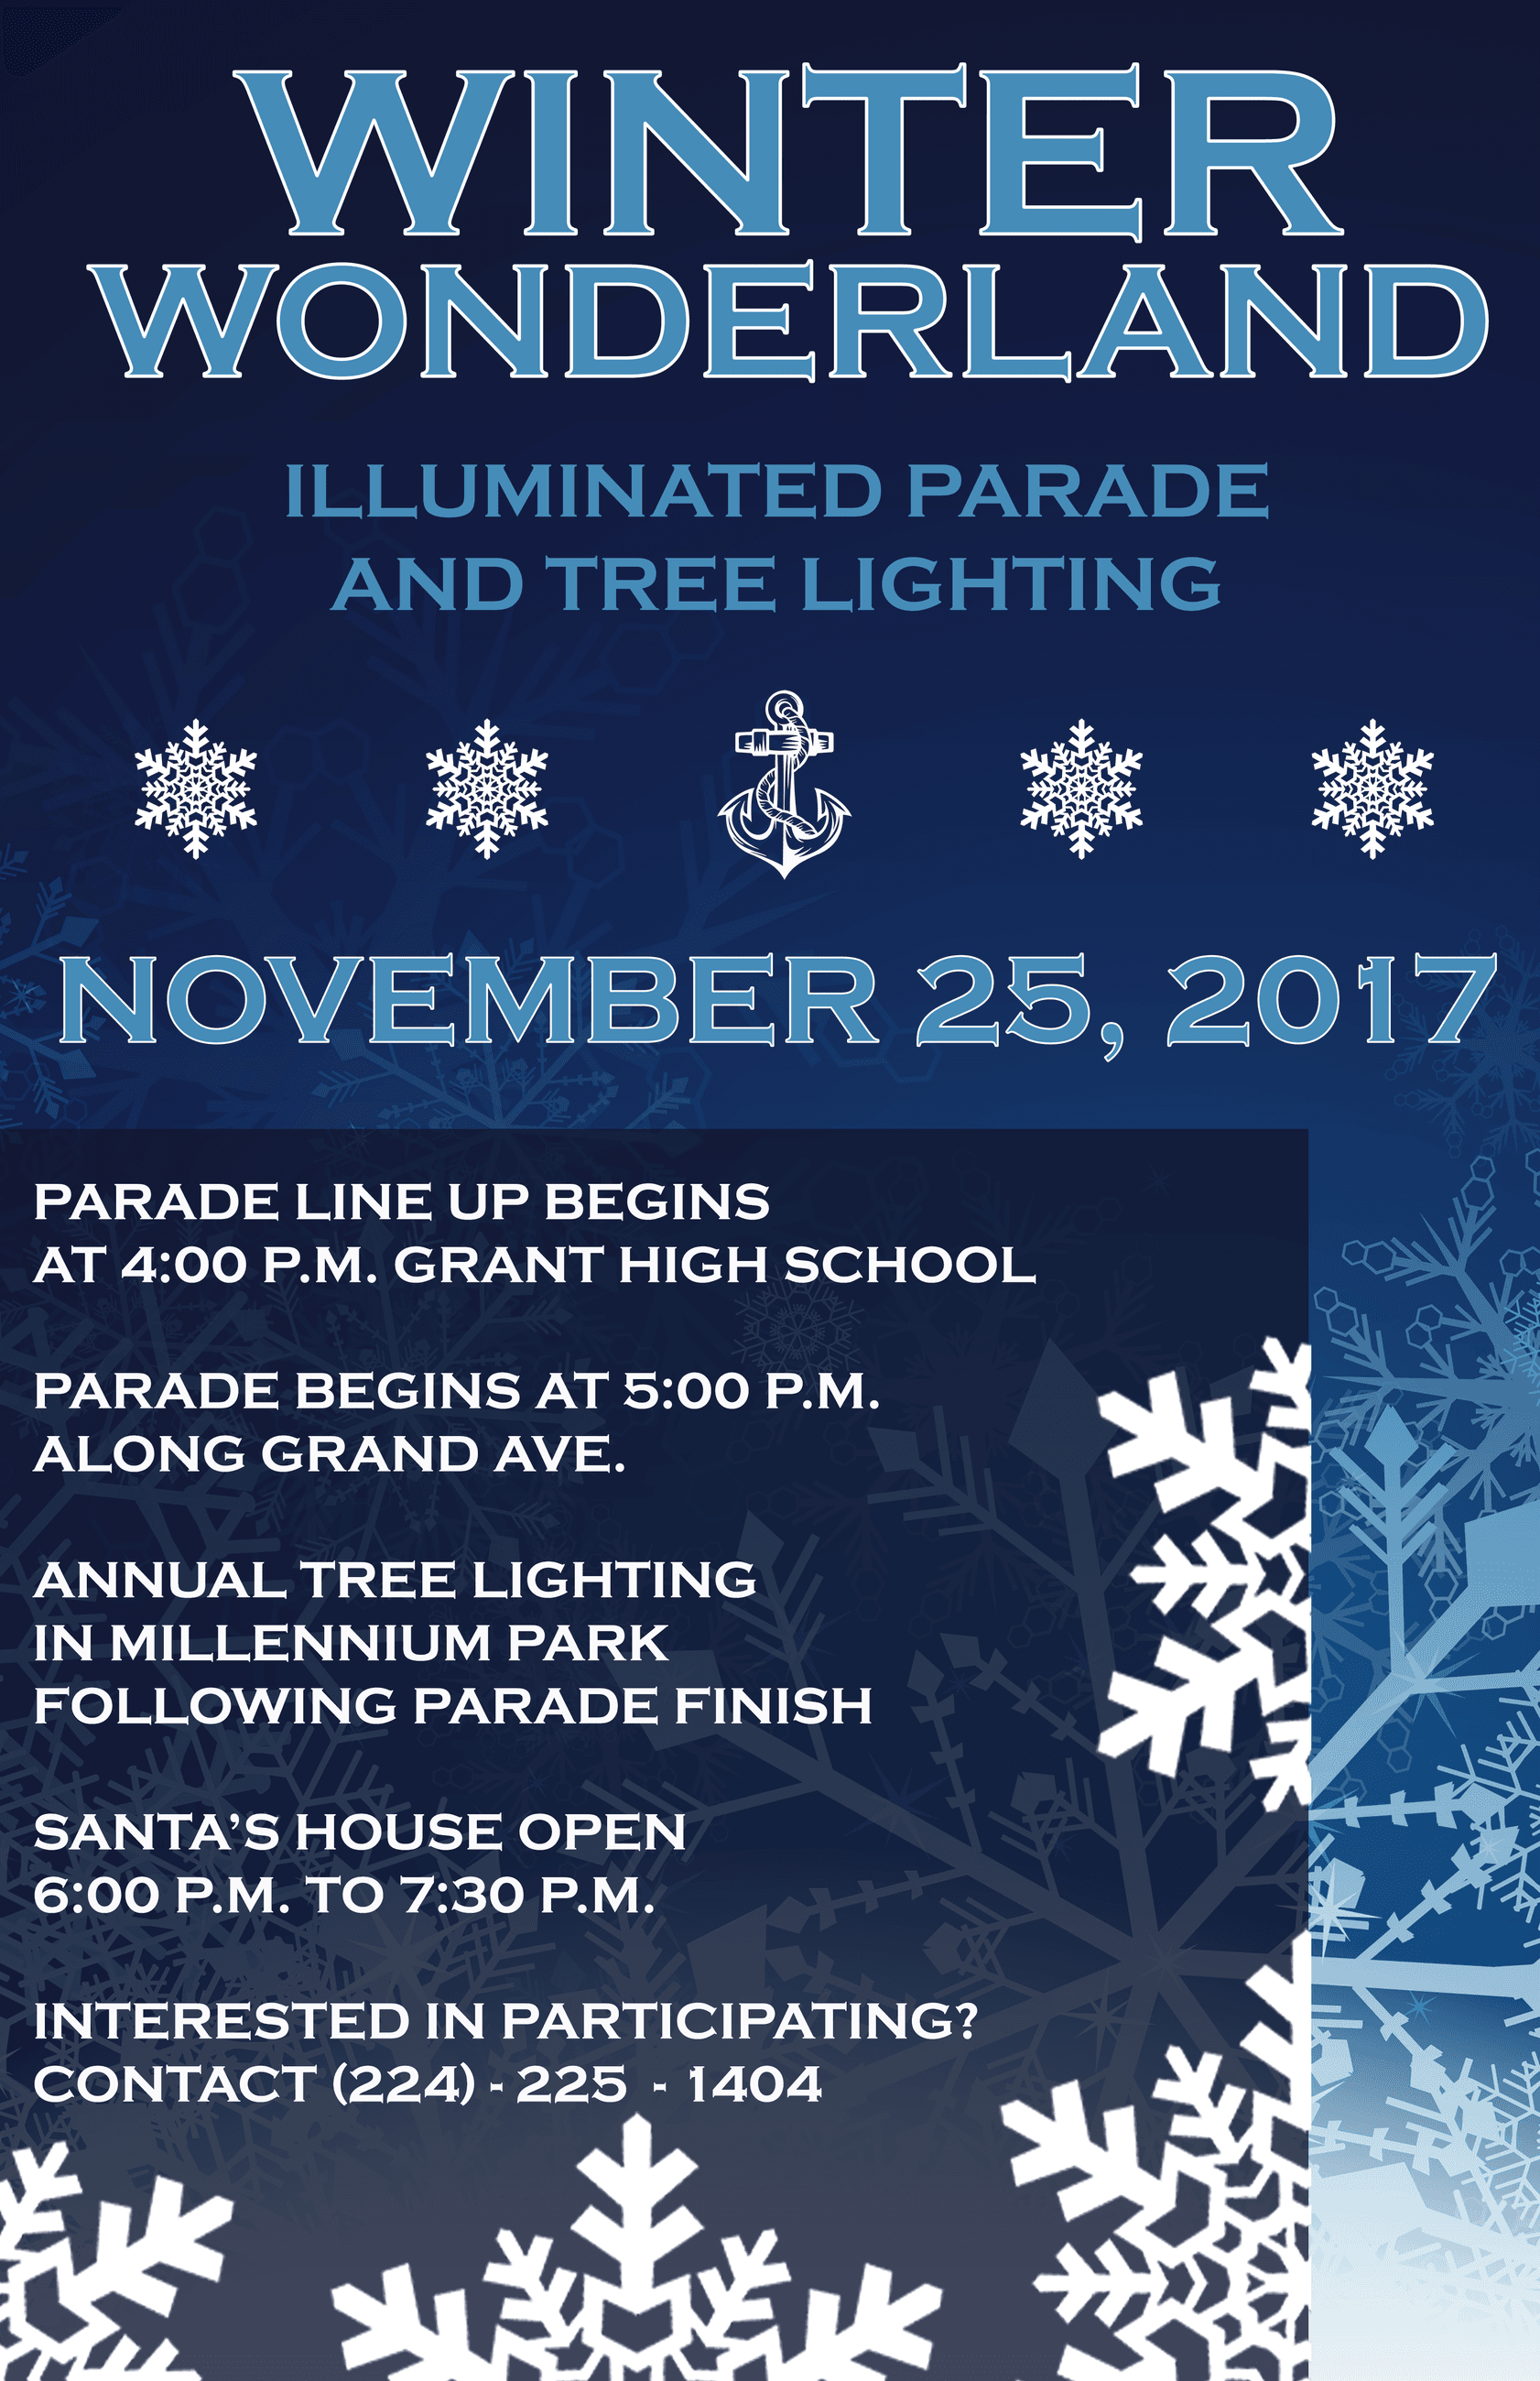 Winter Wonderland Parade